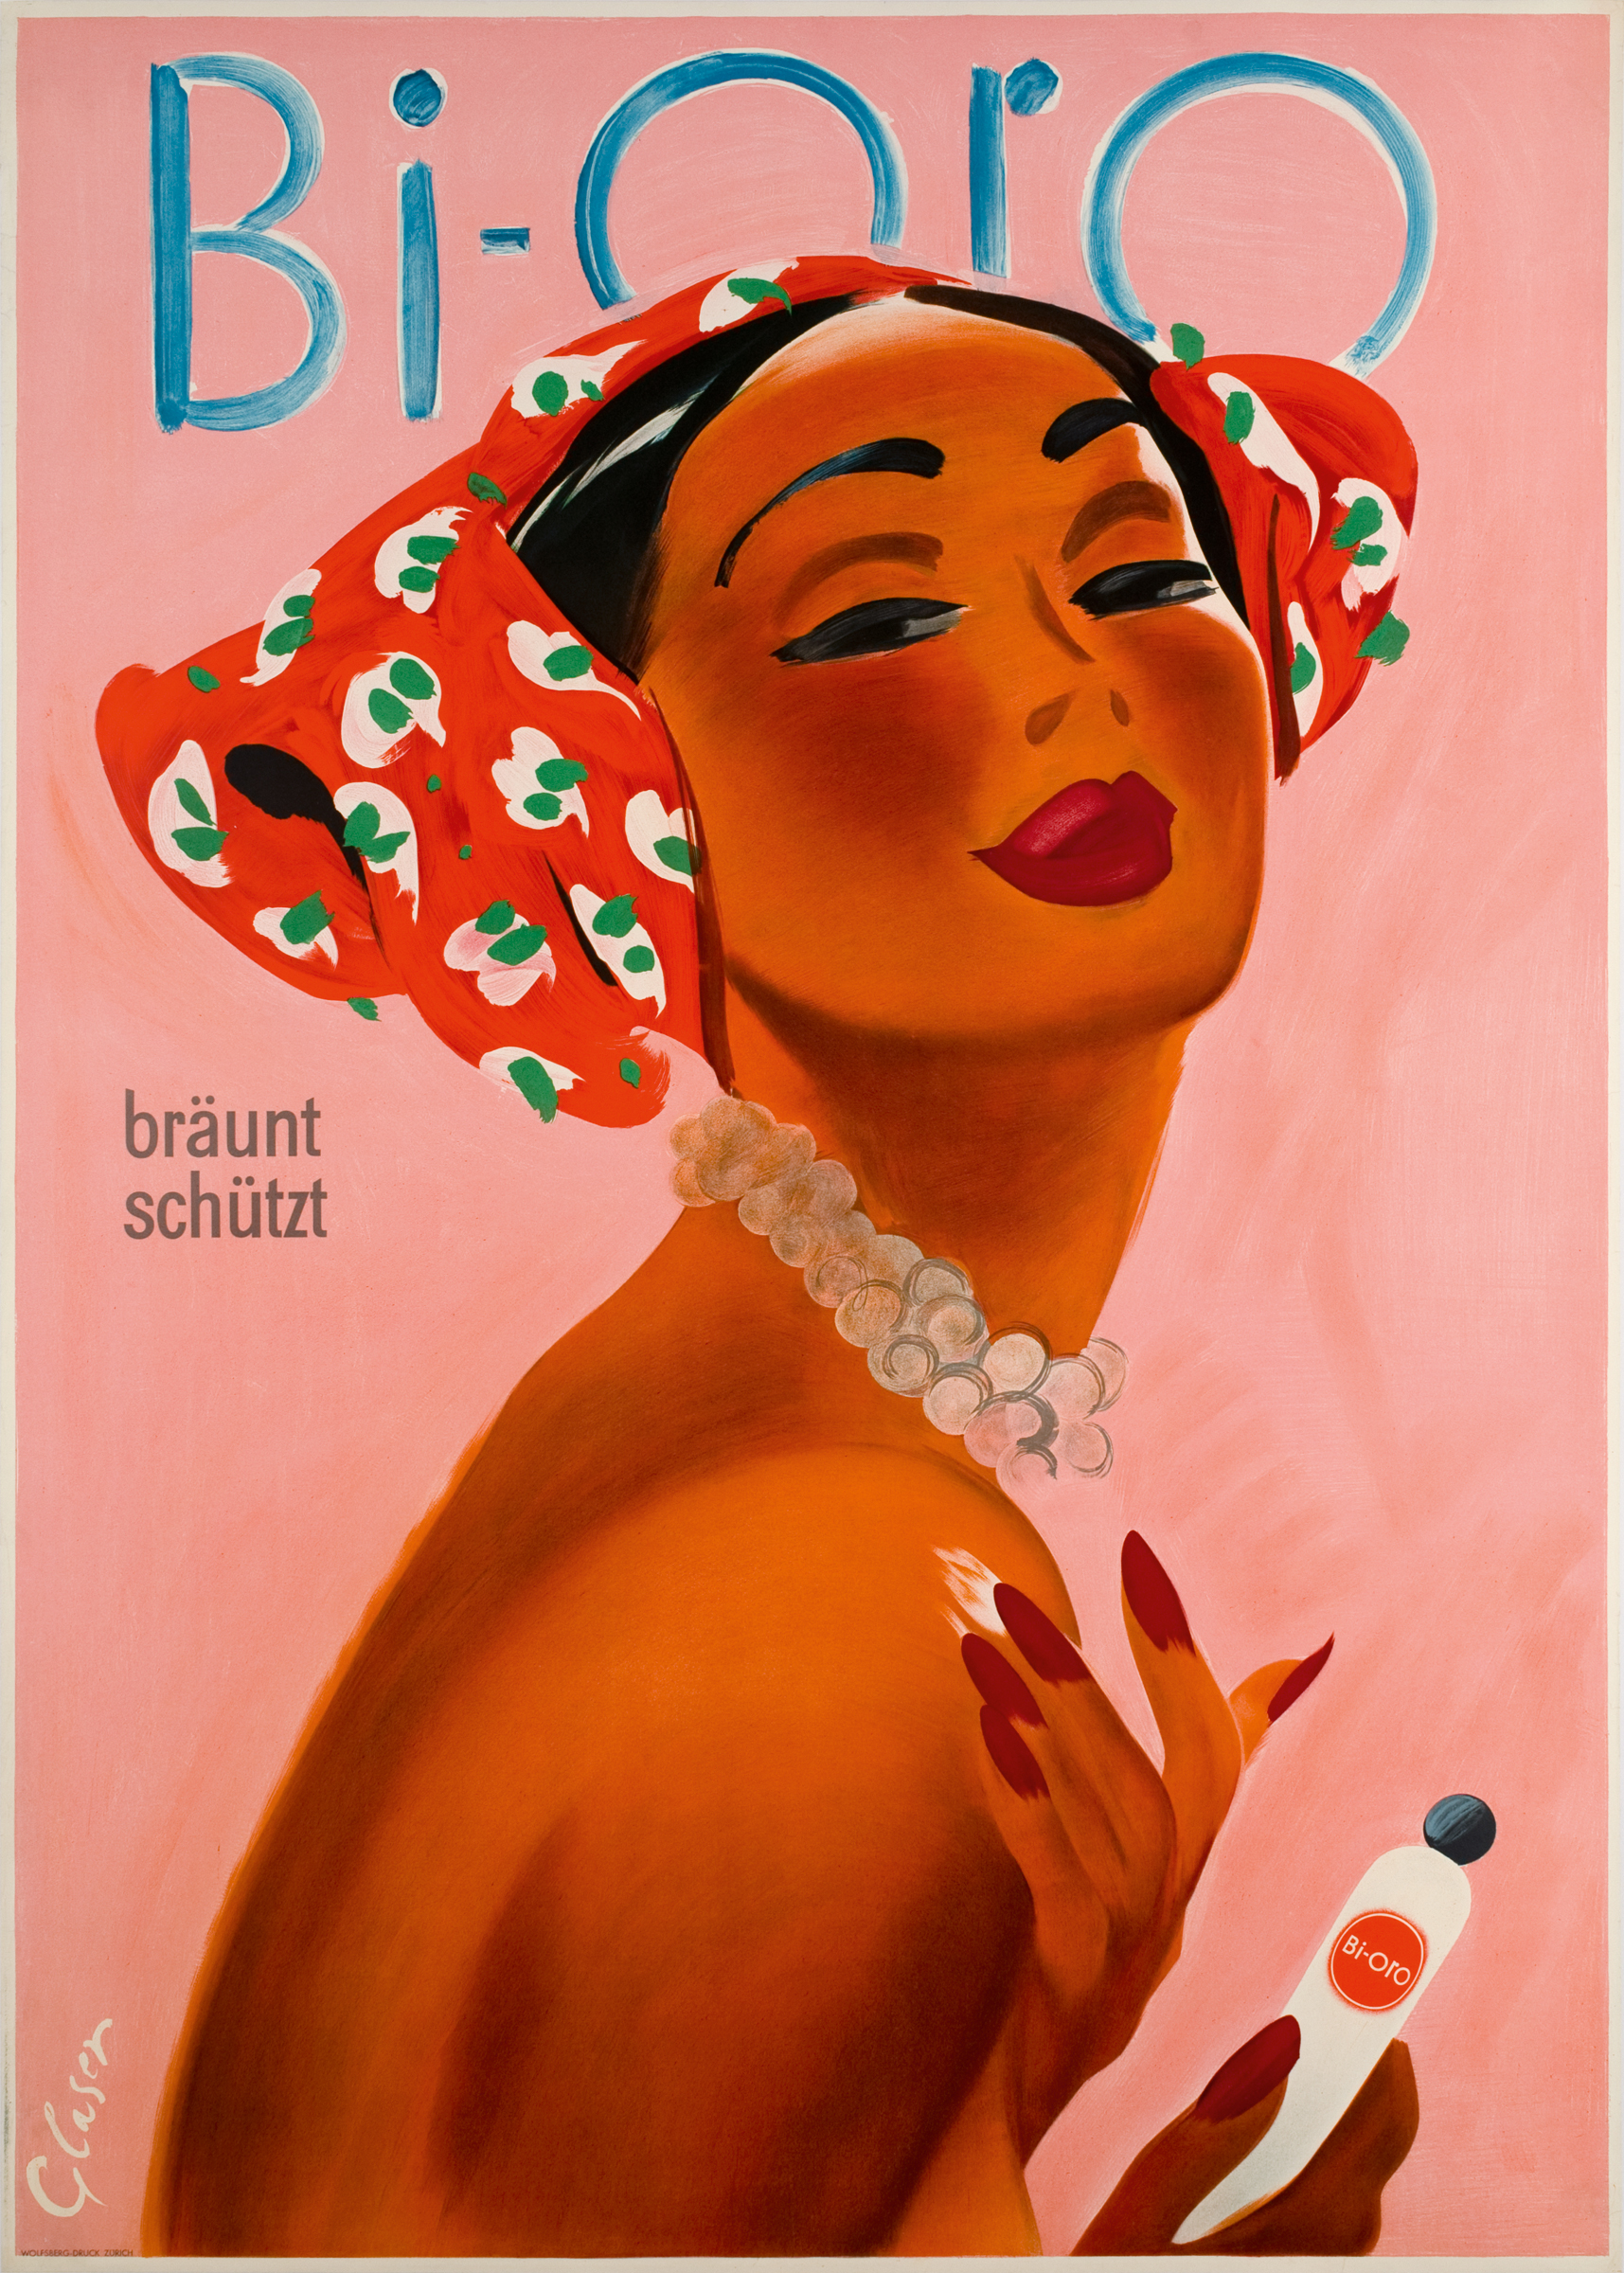 Pretty good investments: collecting vintage beauty posters